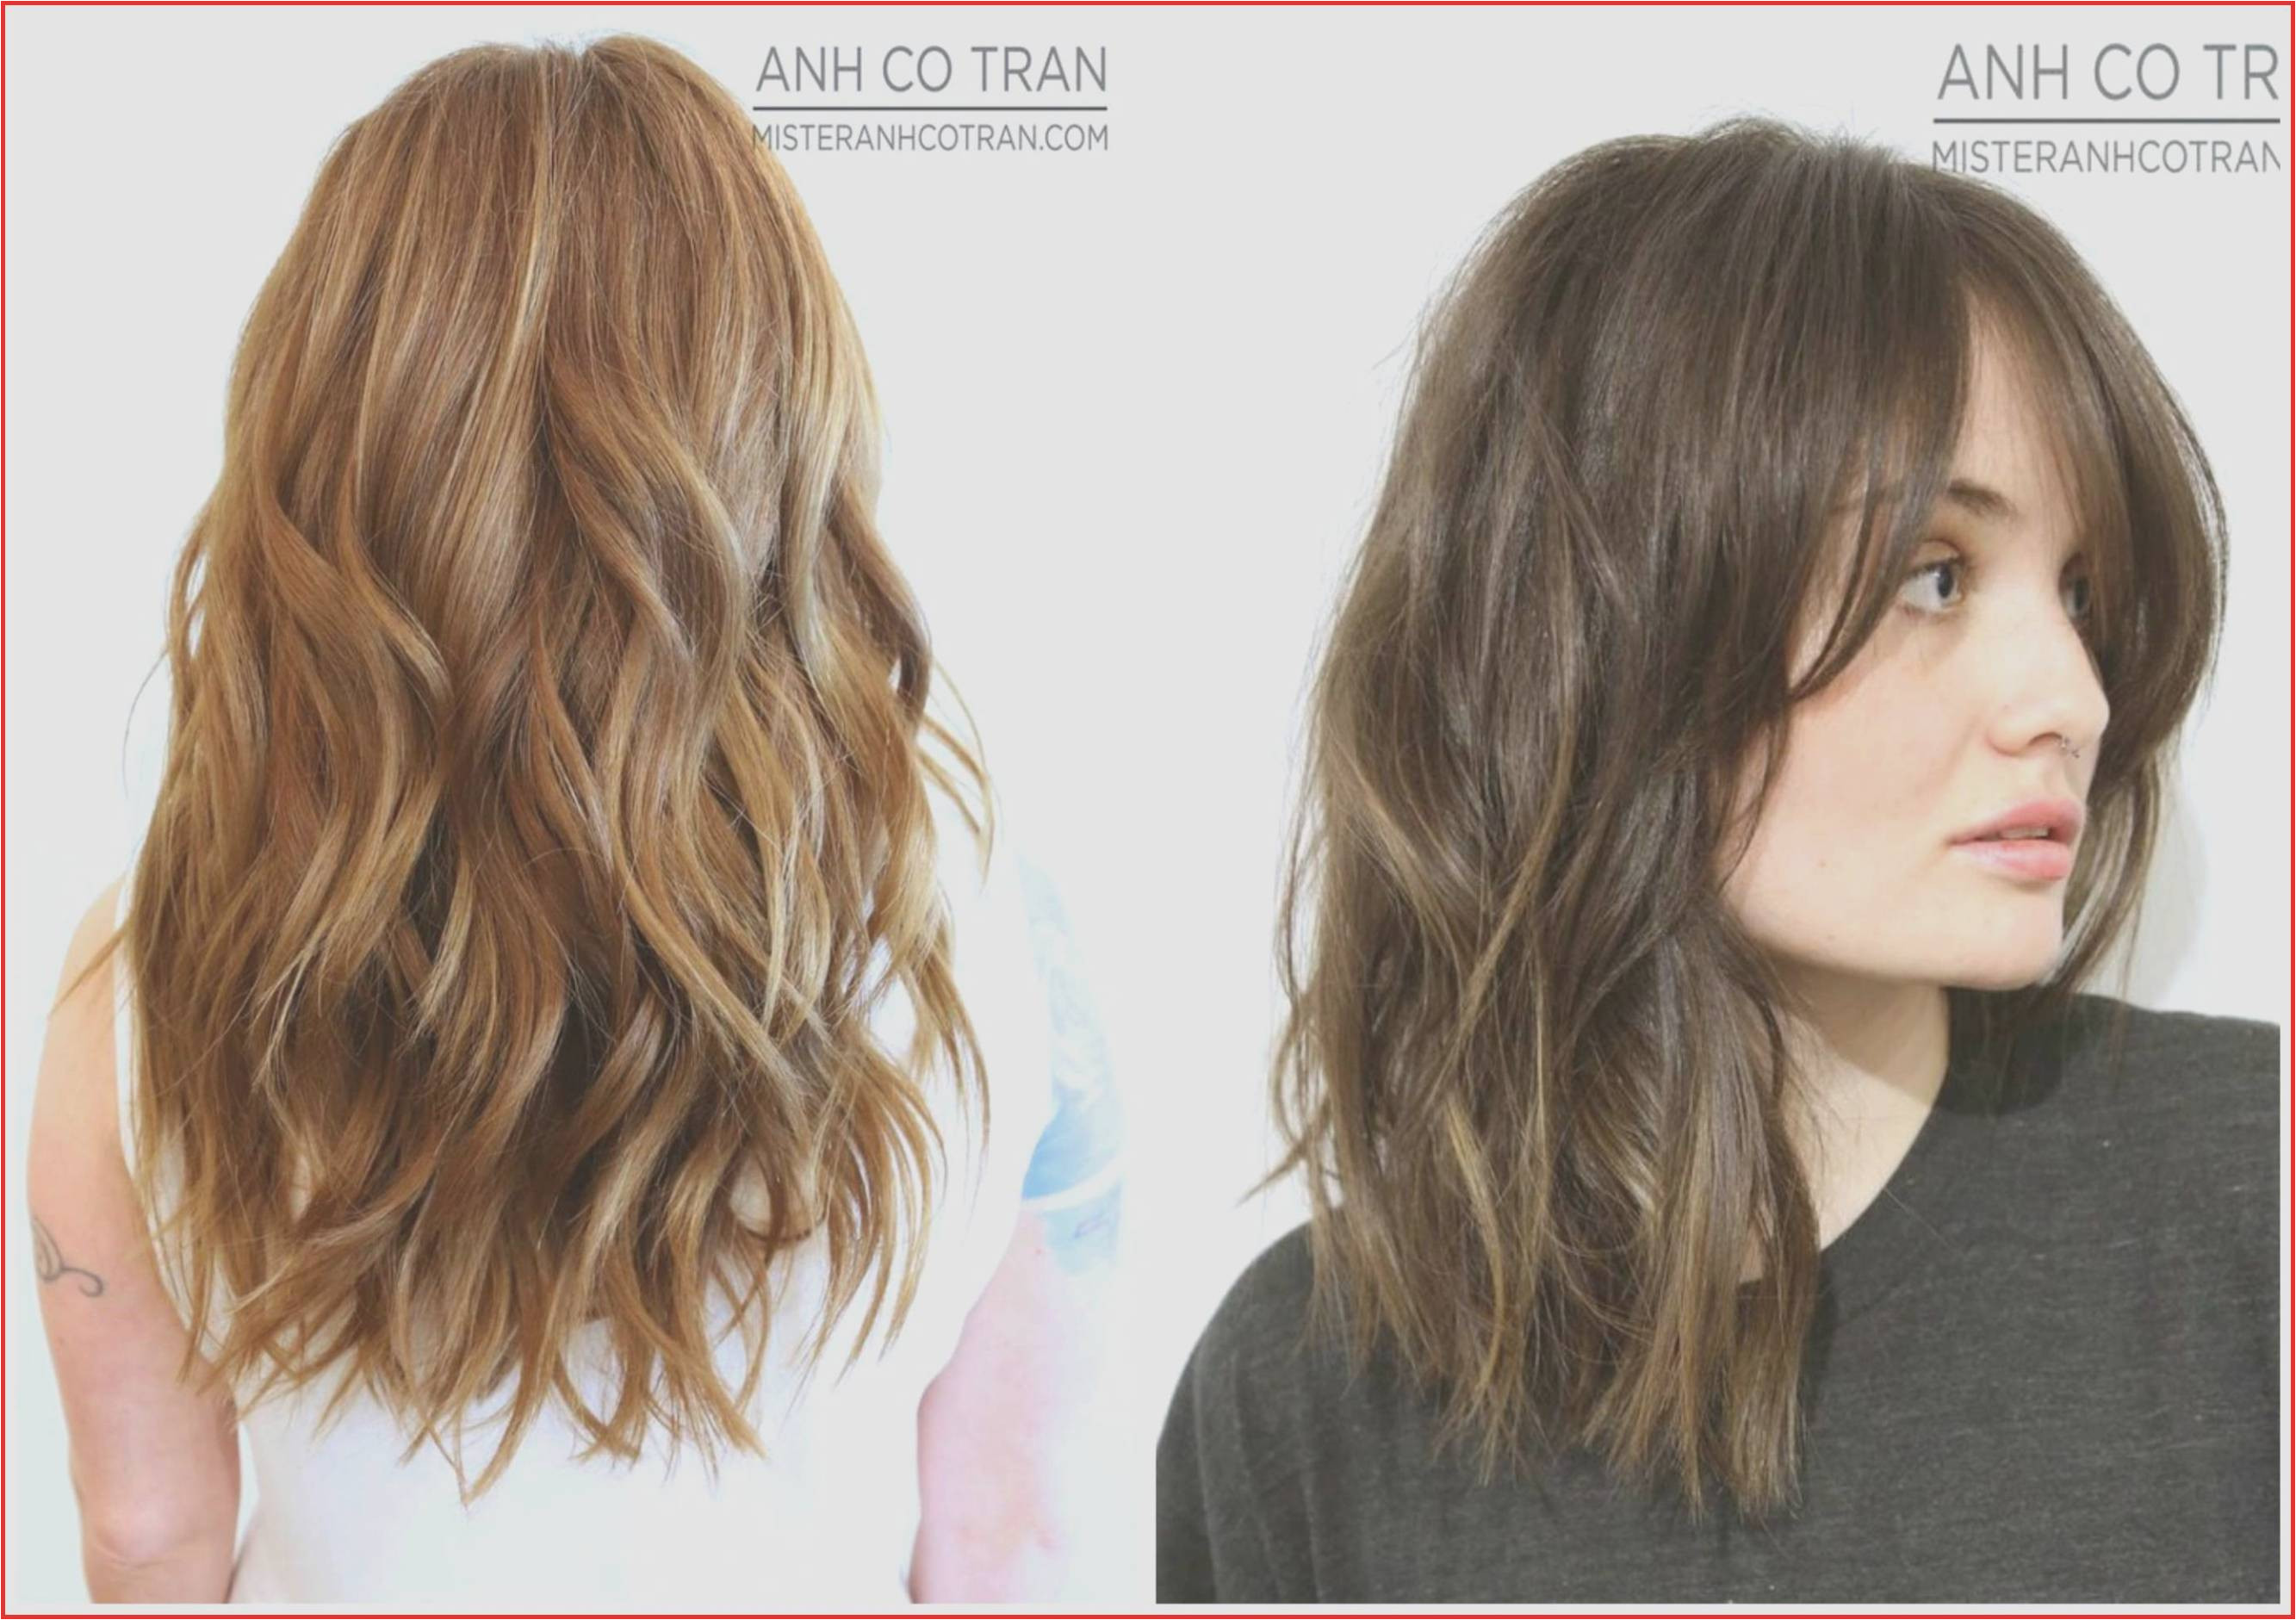 Hair Cuts and Styles Inspirational Medium Brown Hairstyles Medium Cut New Haircut Styles Lovely New